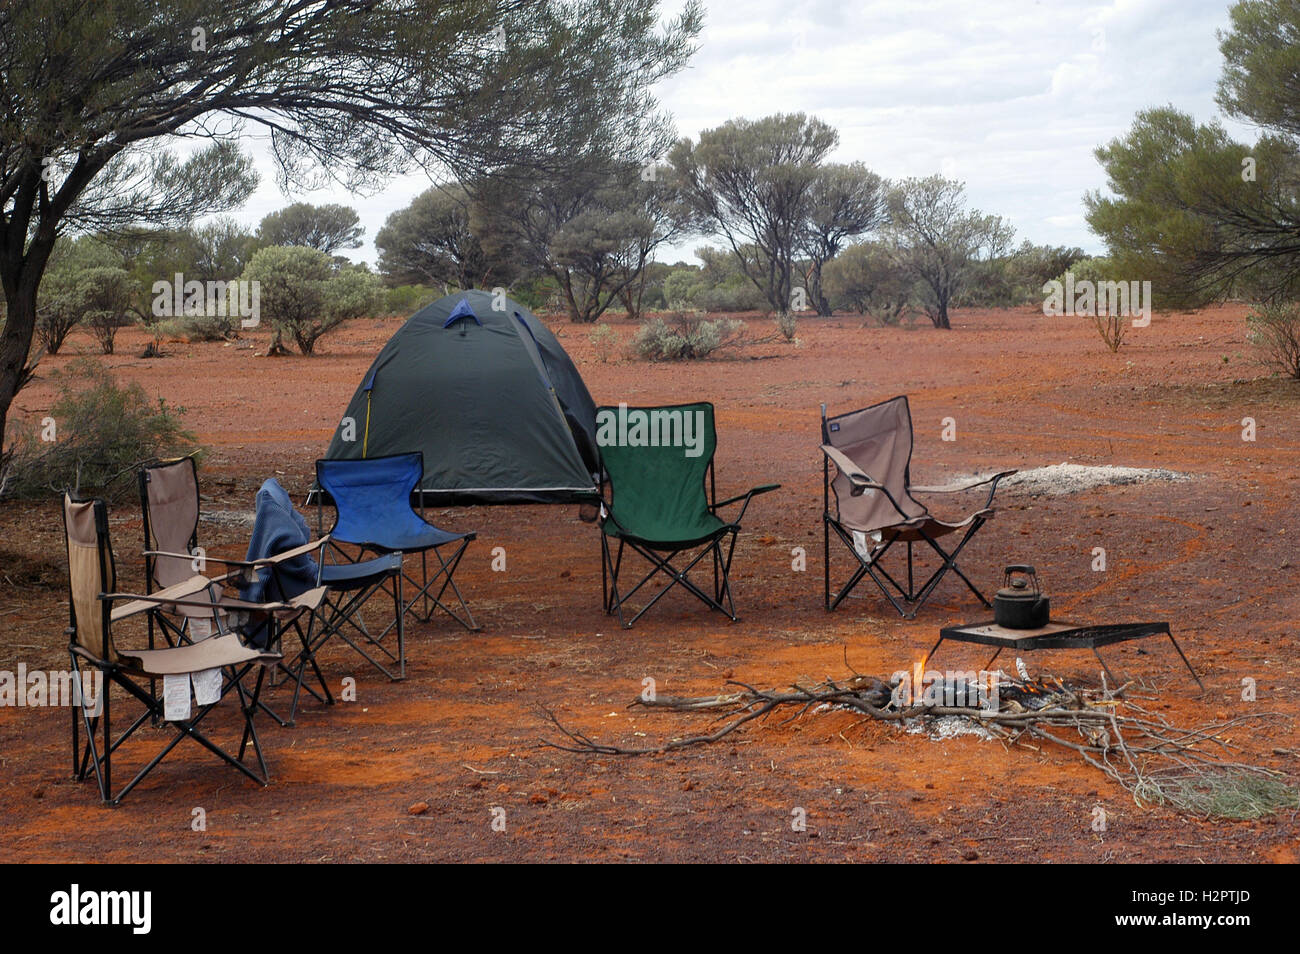 wilderness camping in the Australian bush Stock Photo